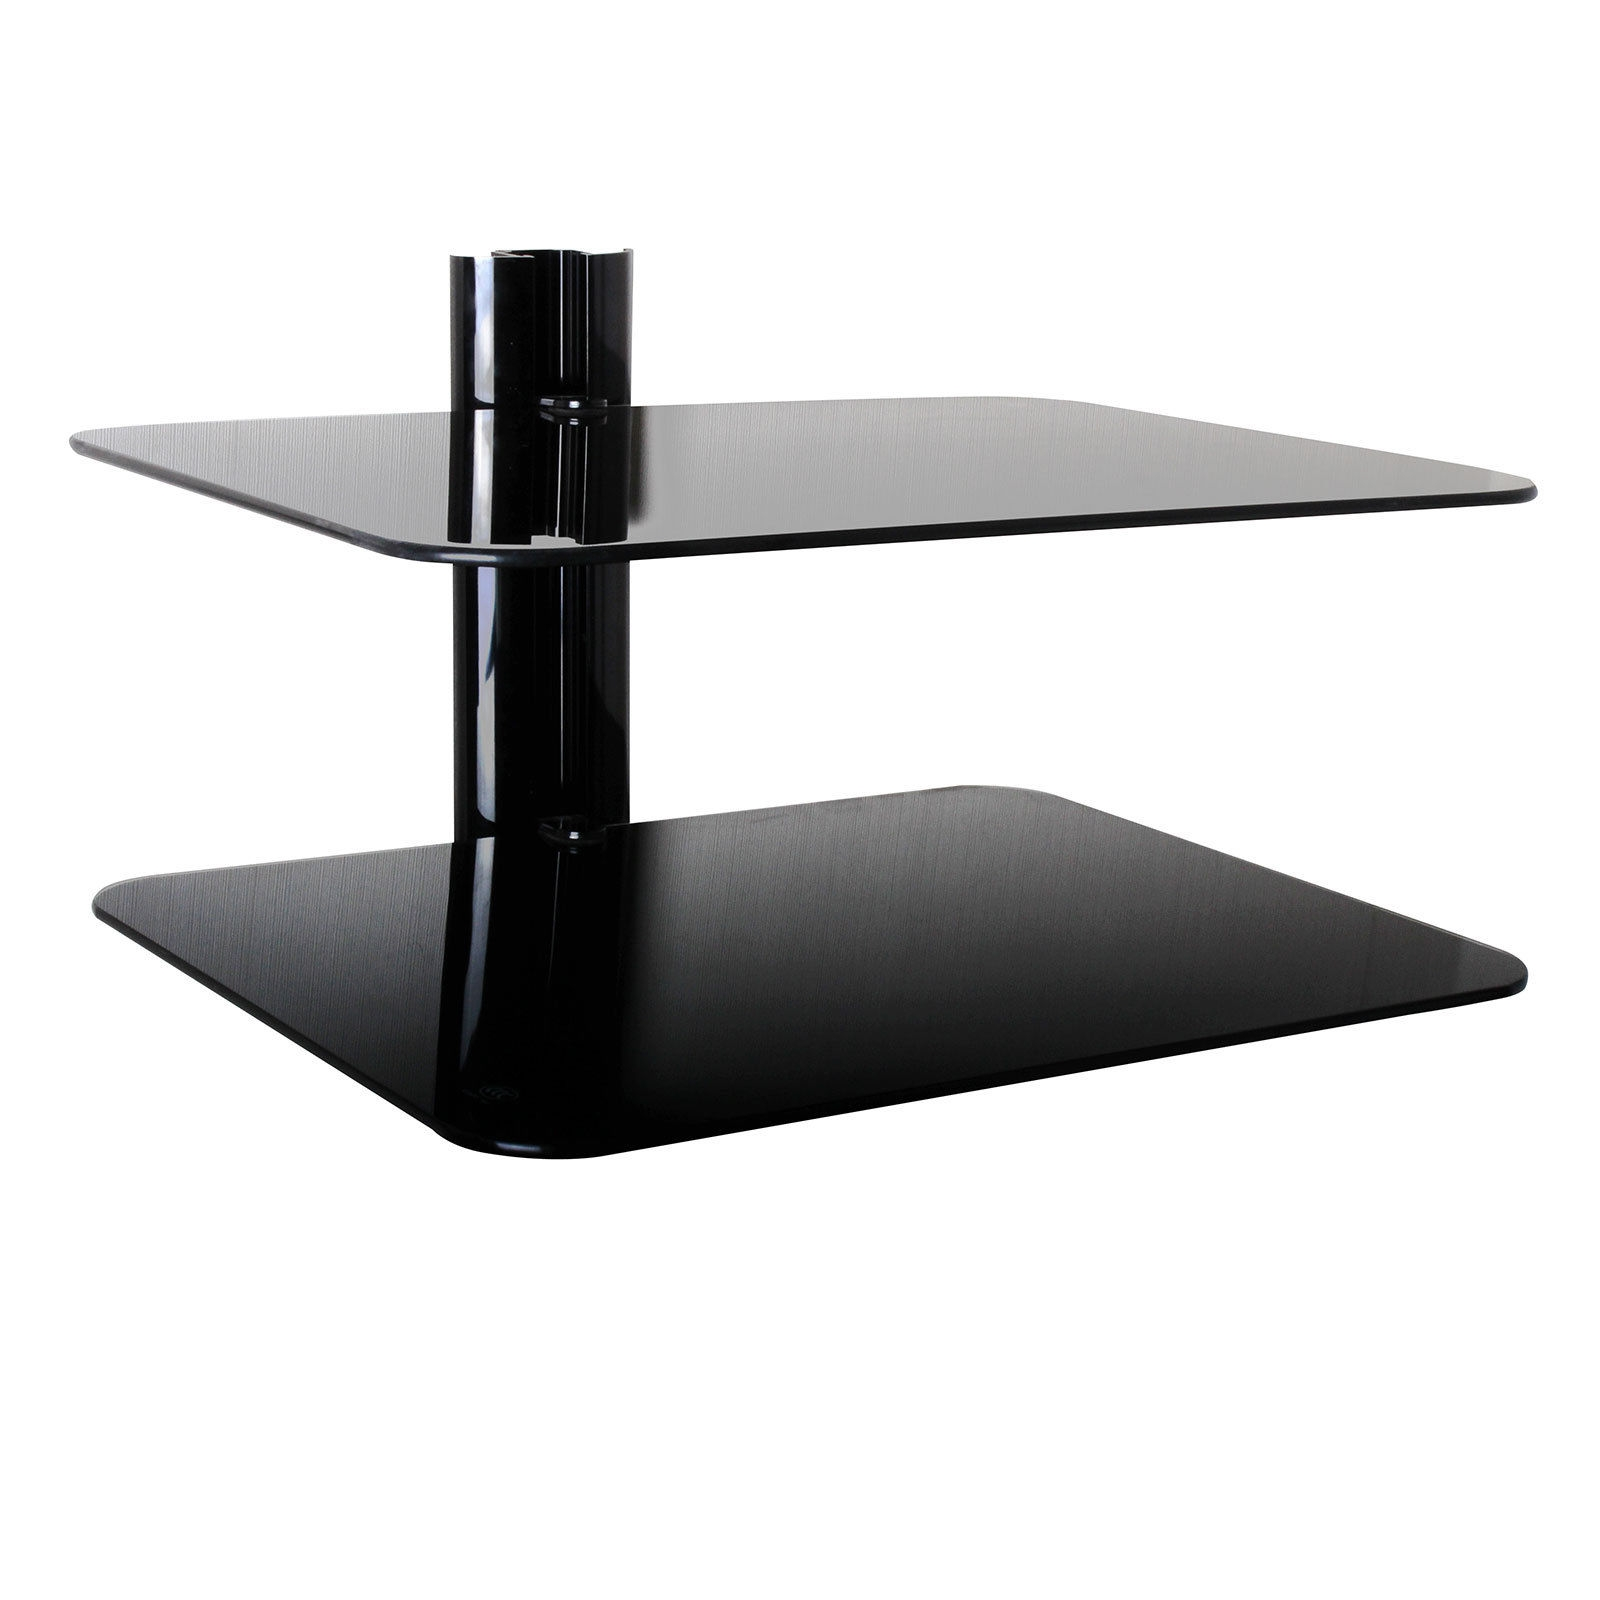 Popular Photo of Wall Mounted Black Glass Shelves